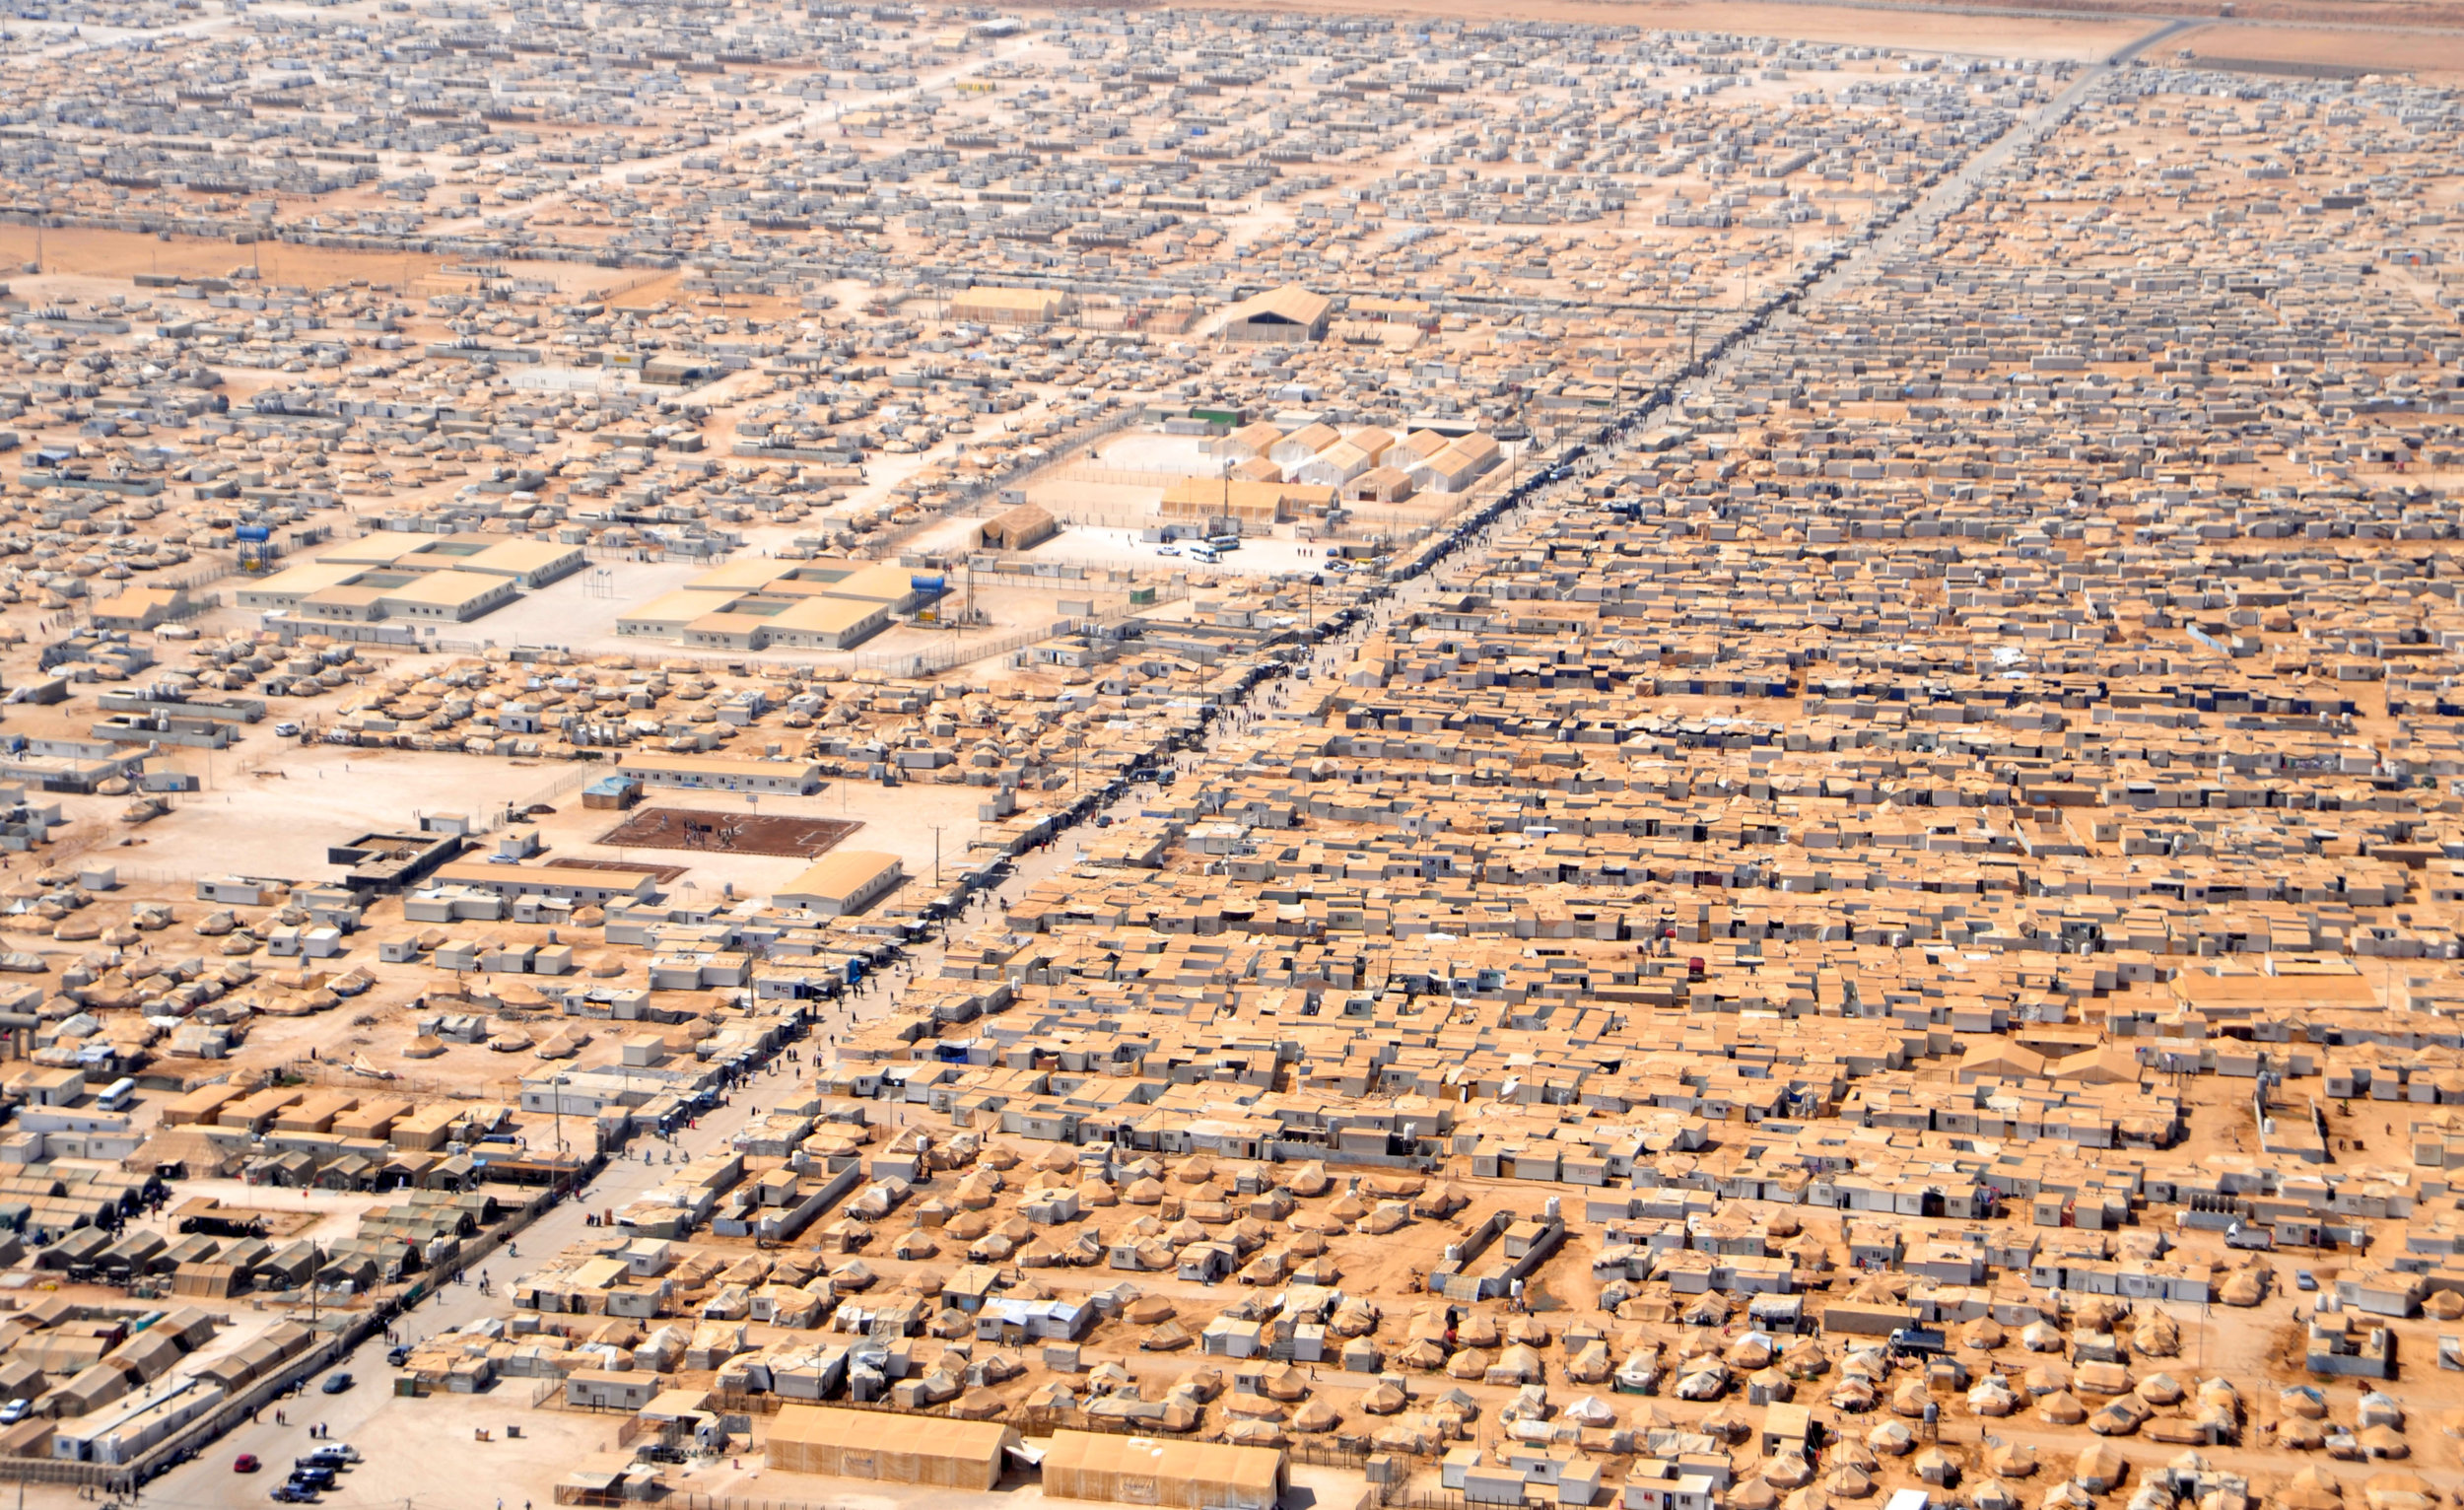 PICTURED:  A close-up view of the Za'atri camp in Jordan for Syrian refugees as seen on July 18, 2013, from a helicopter carrying U.S. Secretary of State John Kerry and Jordanian Foreign Minister Nasser Judeh.